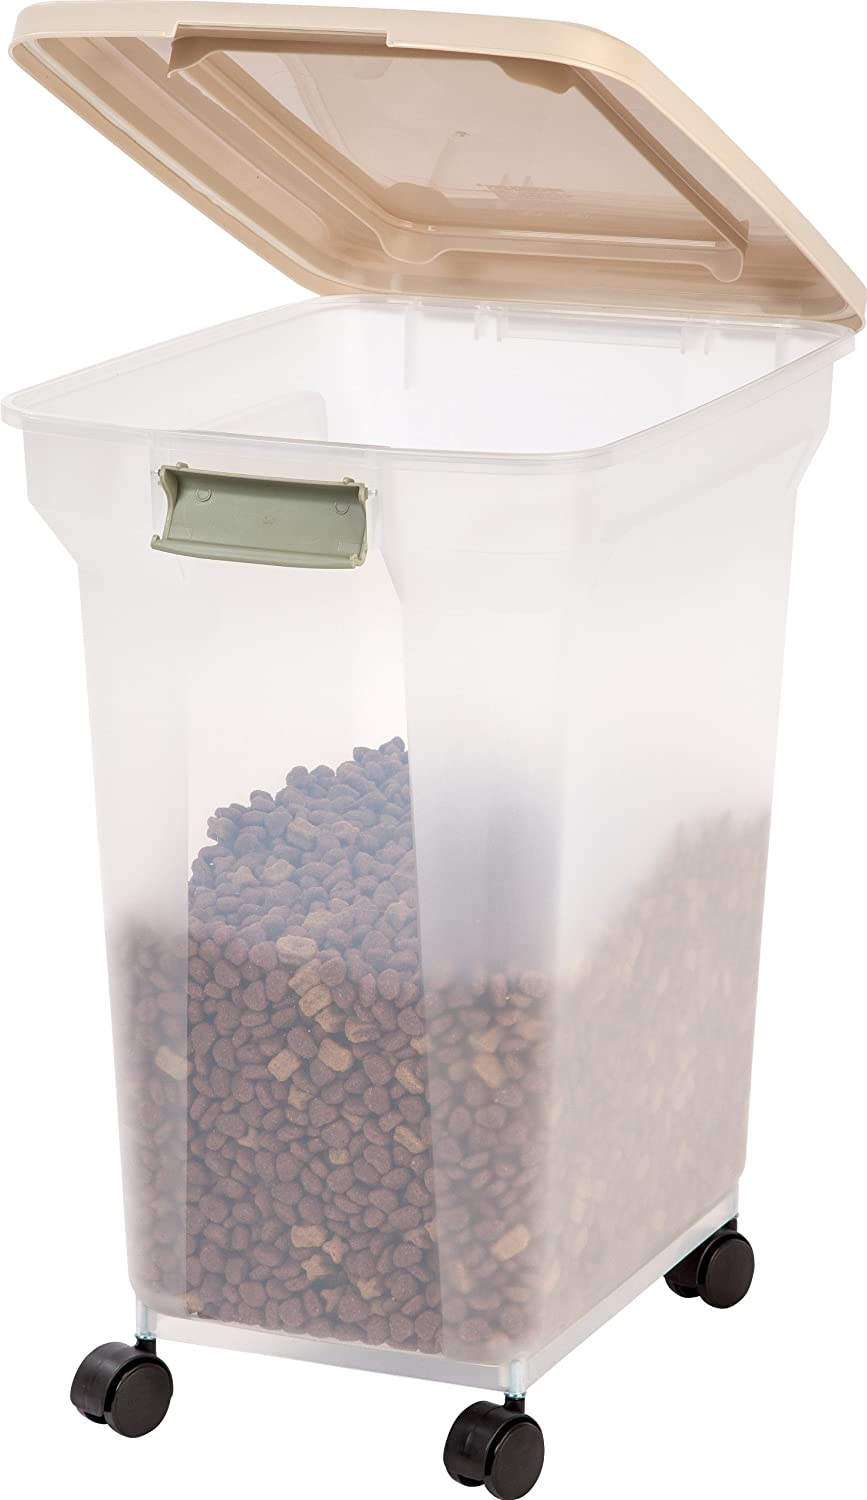 Pet Supplies : IRIS Premium Airtight Pet Food Storage Container, 42 Pounds,  Almond : Pet Food Storage Products : Amazon.com